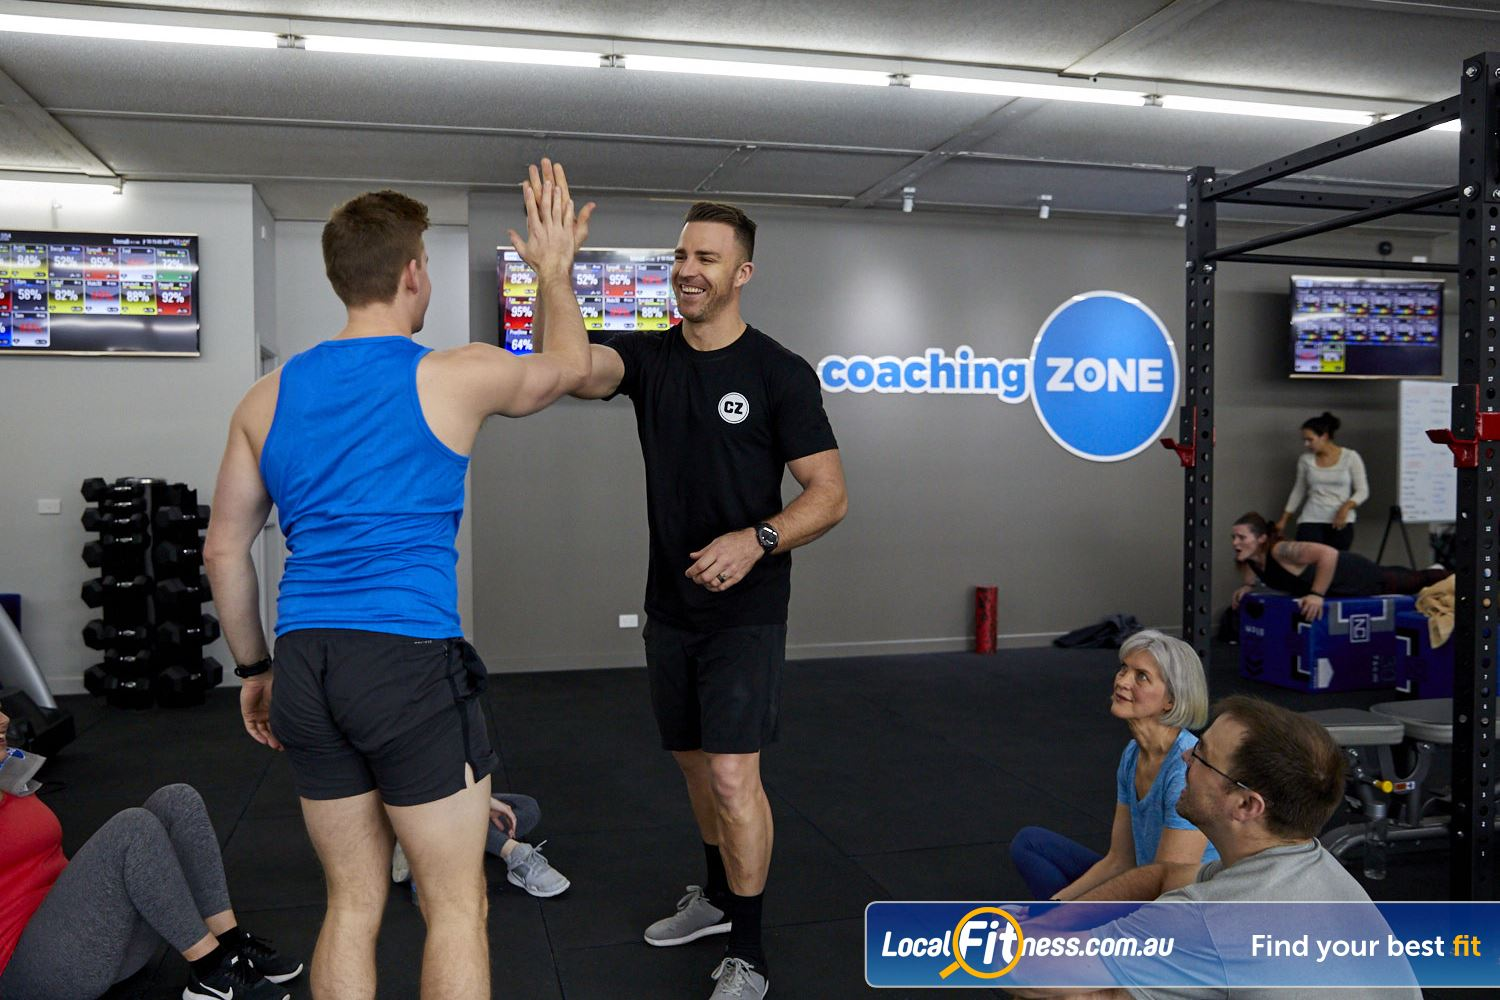 Coaching Zone Near Upper Ferntree Gully Join the Coaching Zone Ferntree Gully community and get results together.